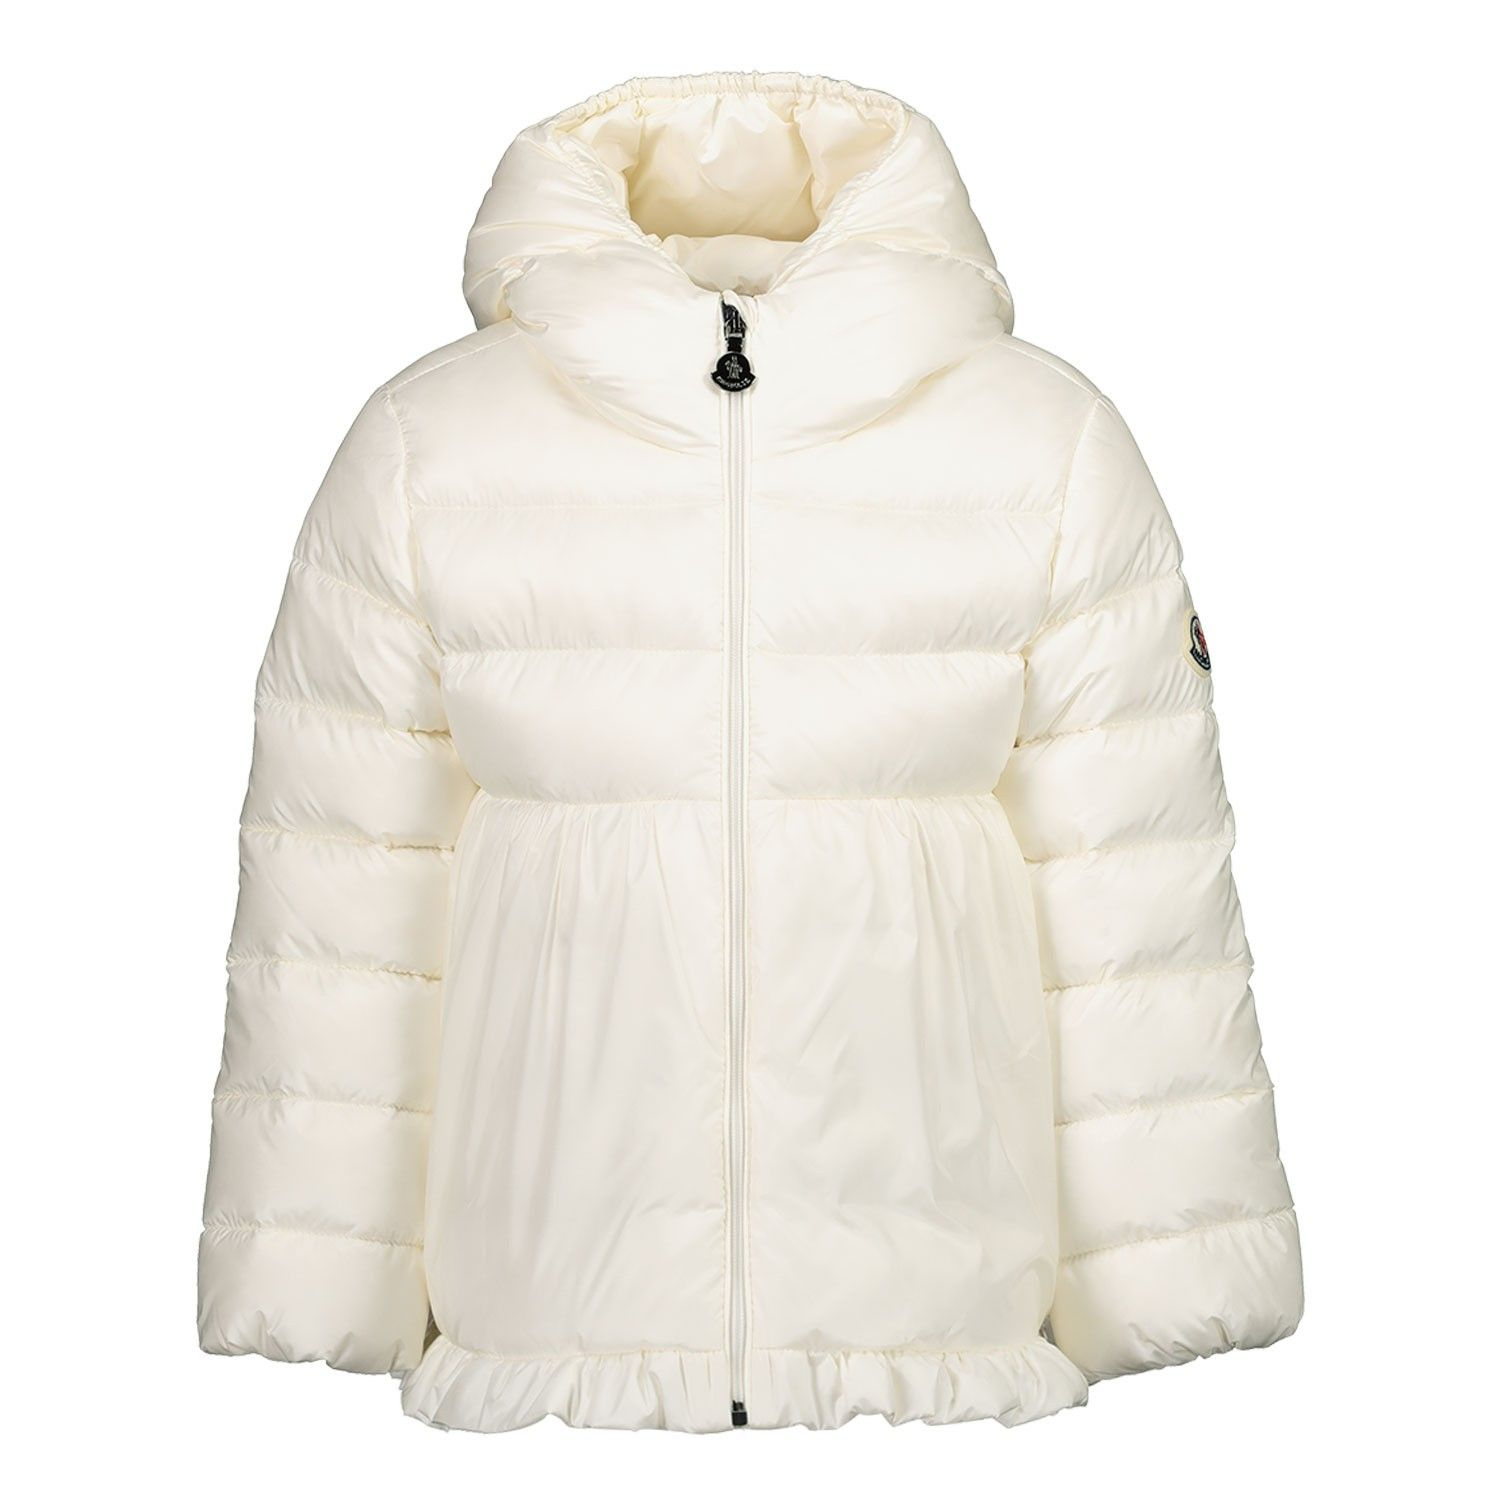 Picture of Moncler 1A53010 baby coat off white